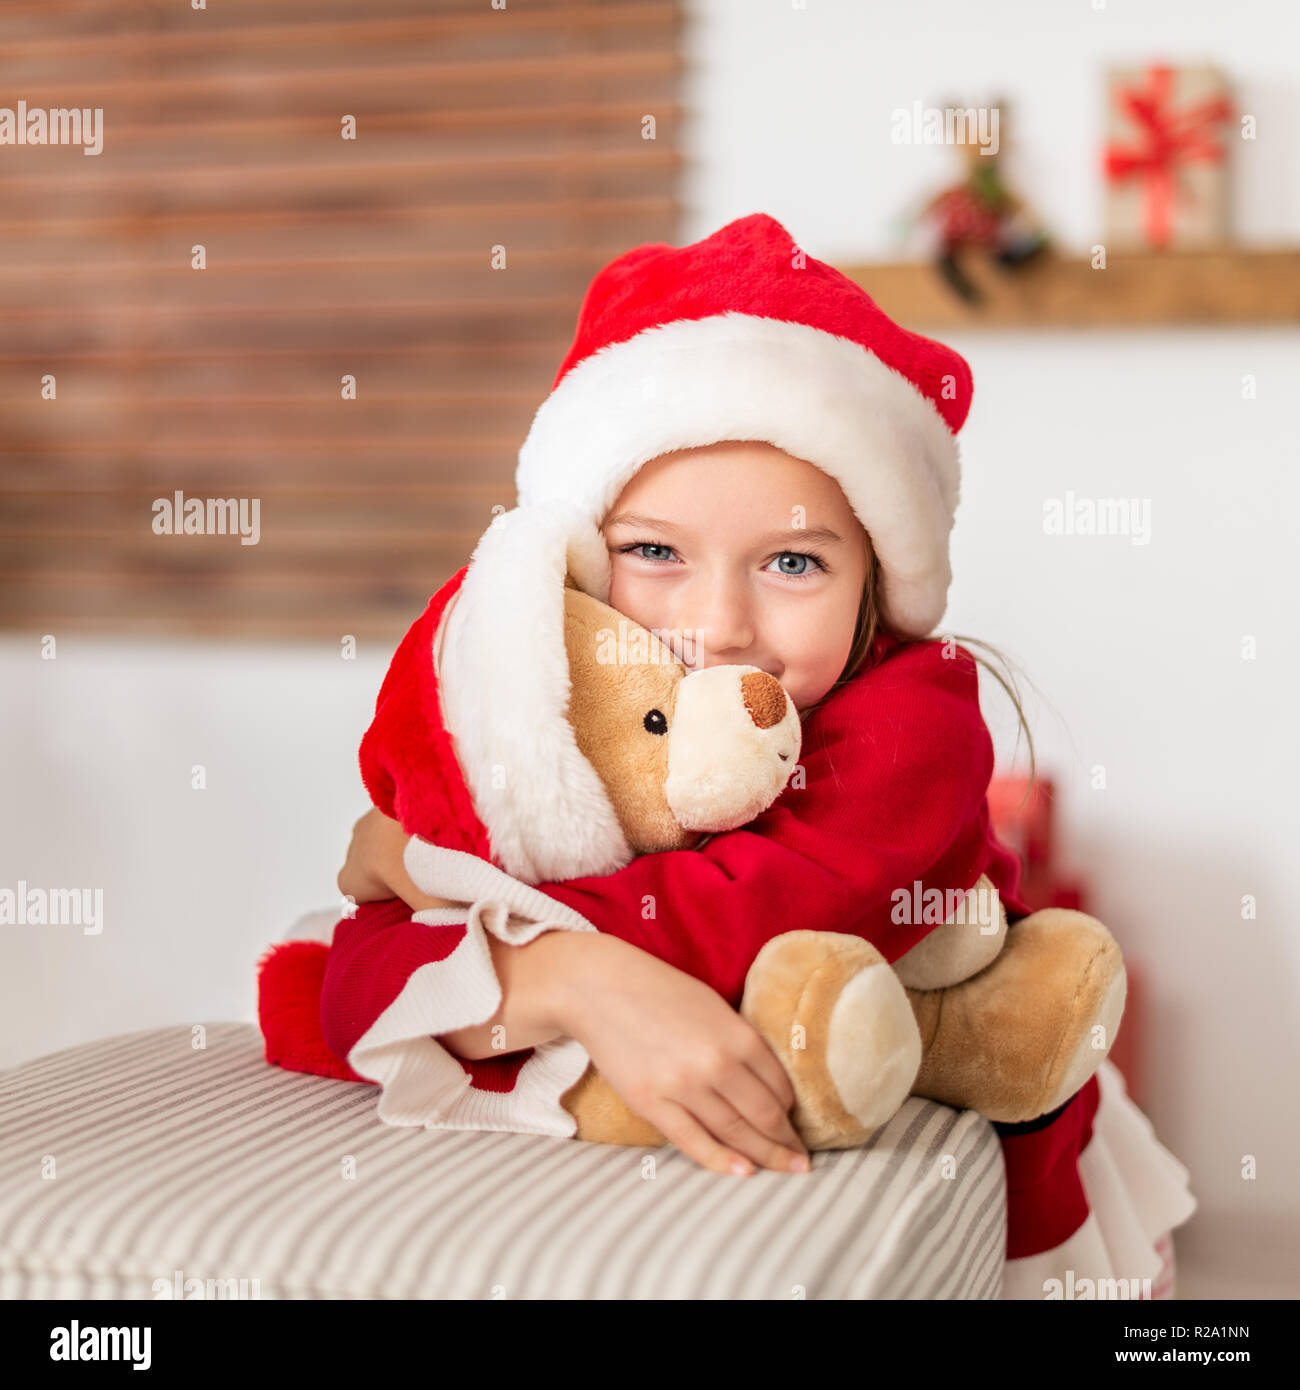 942b70b1f Cute young girl wearing santa hat hugging her christmas present, soft toy  teddy bear. Happy kid with xmas present, smiling and looking at camera.